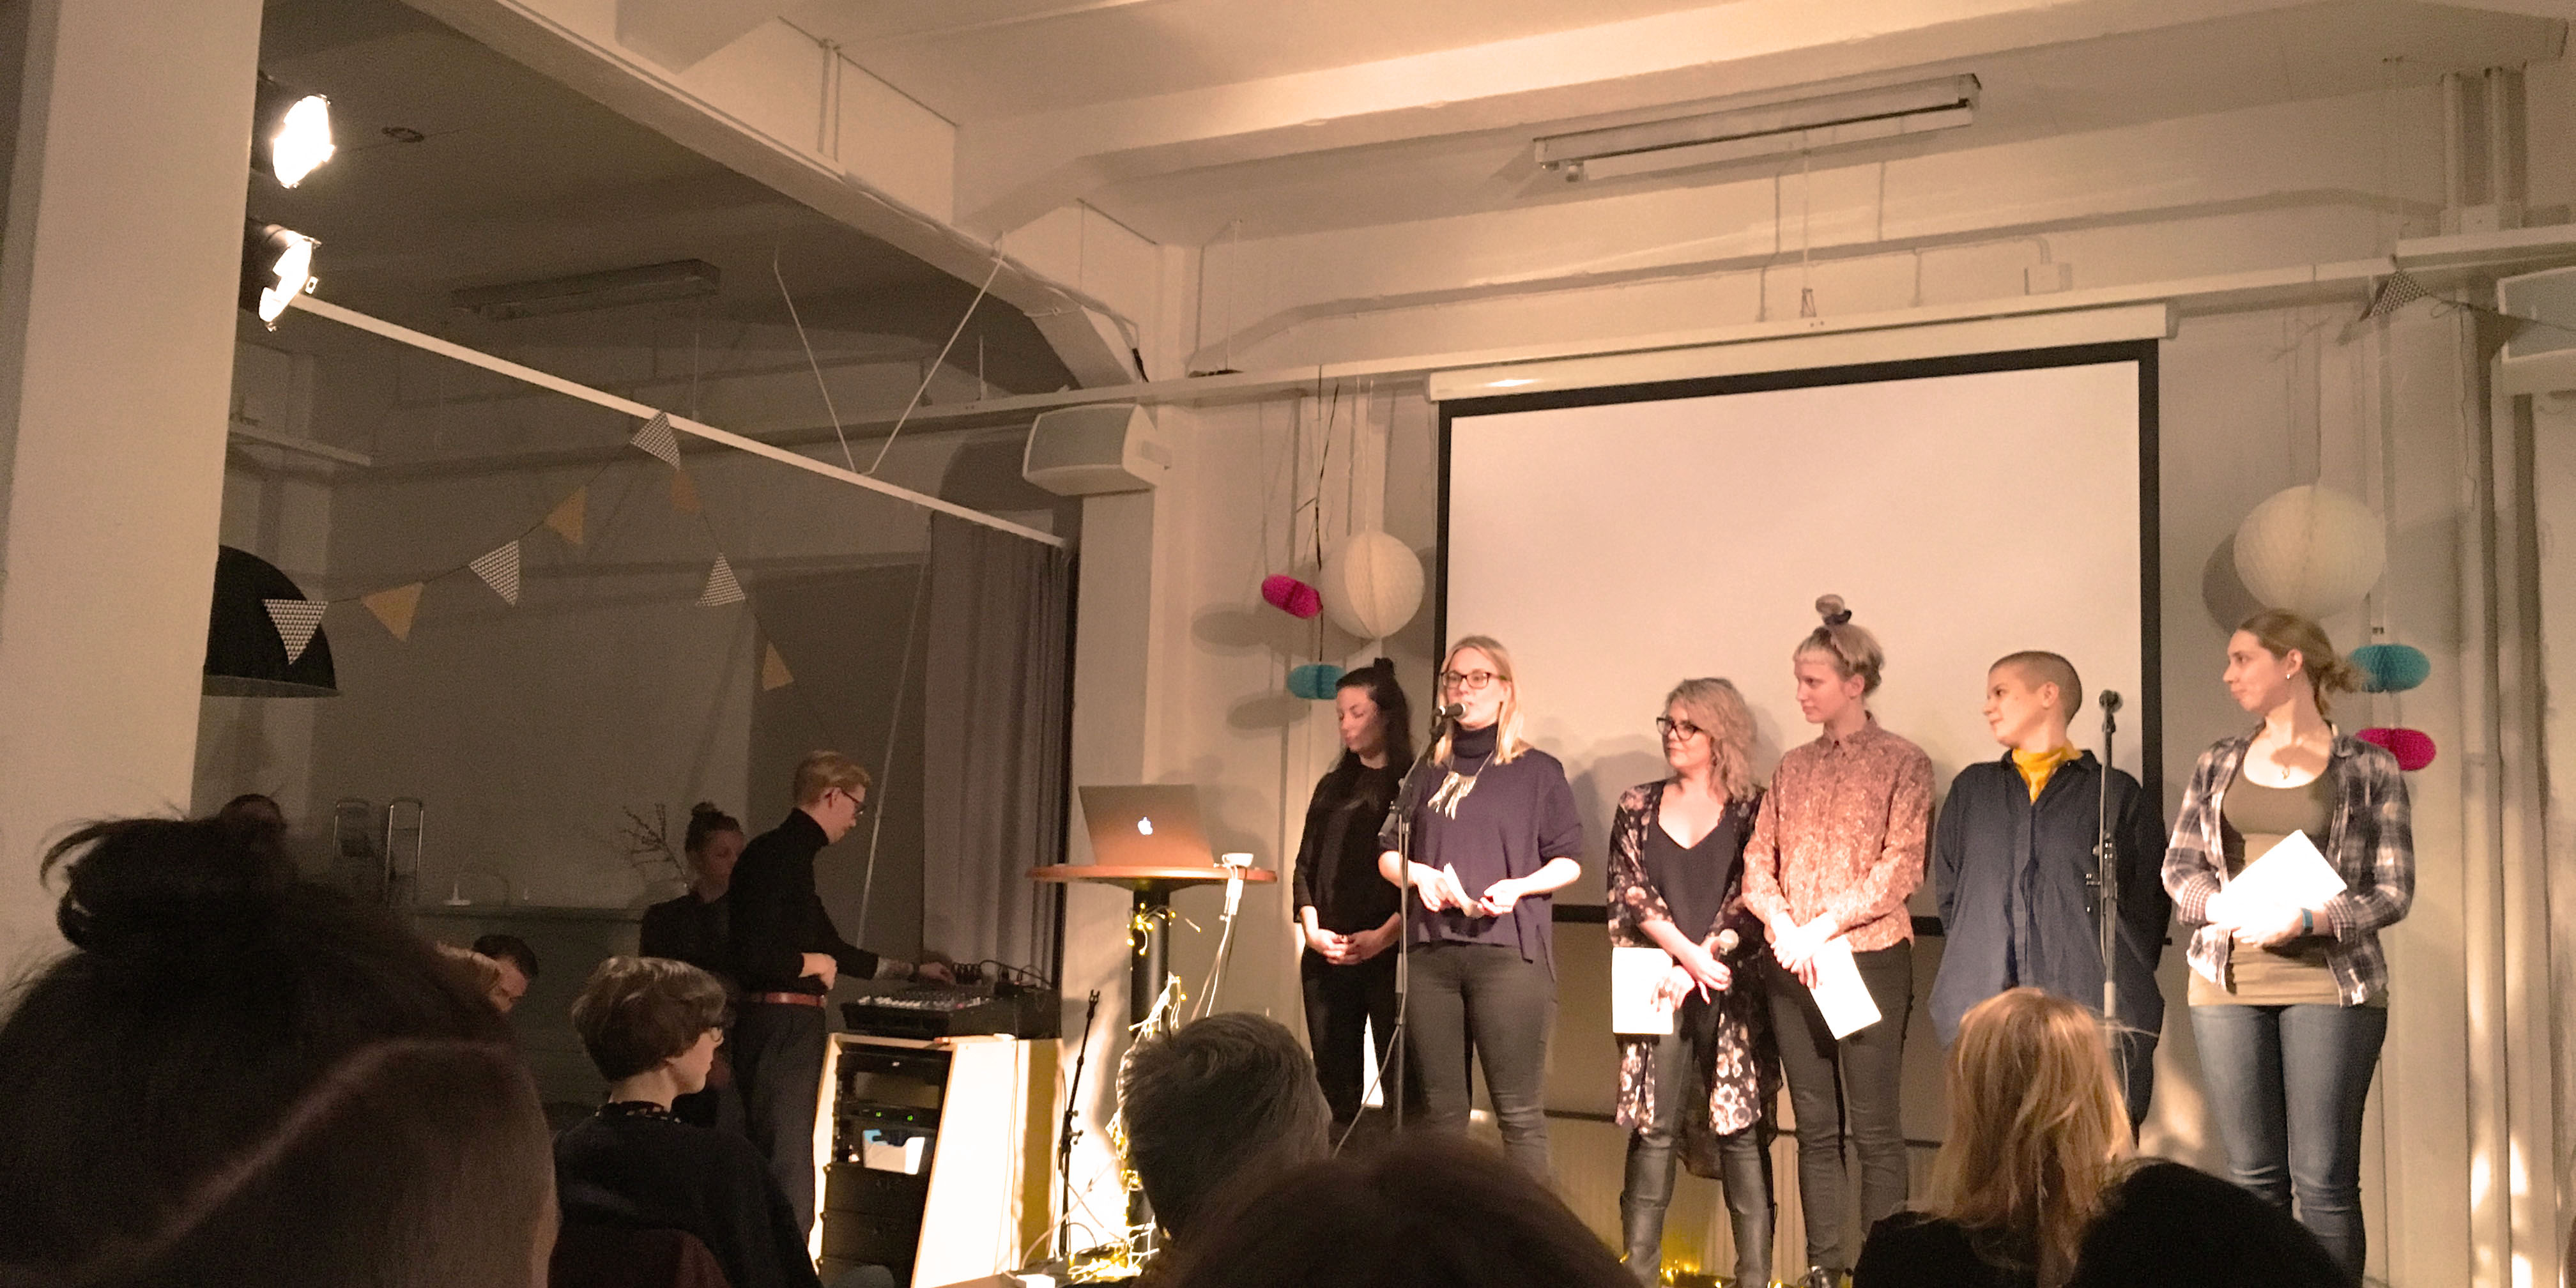 Image from the presentation of the project at Göteborgs Litteraturhus, winter 2017. Photo: Anna Bergström